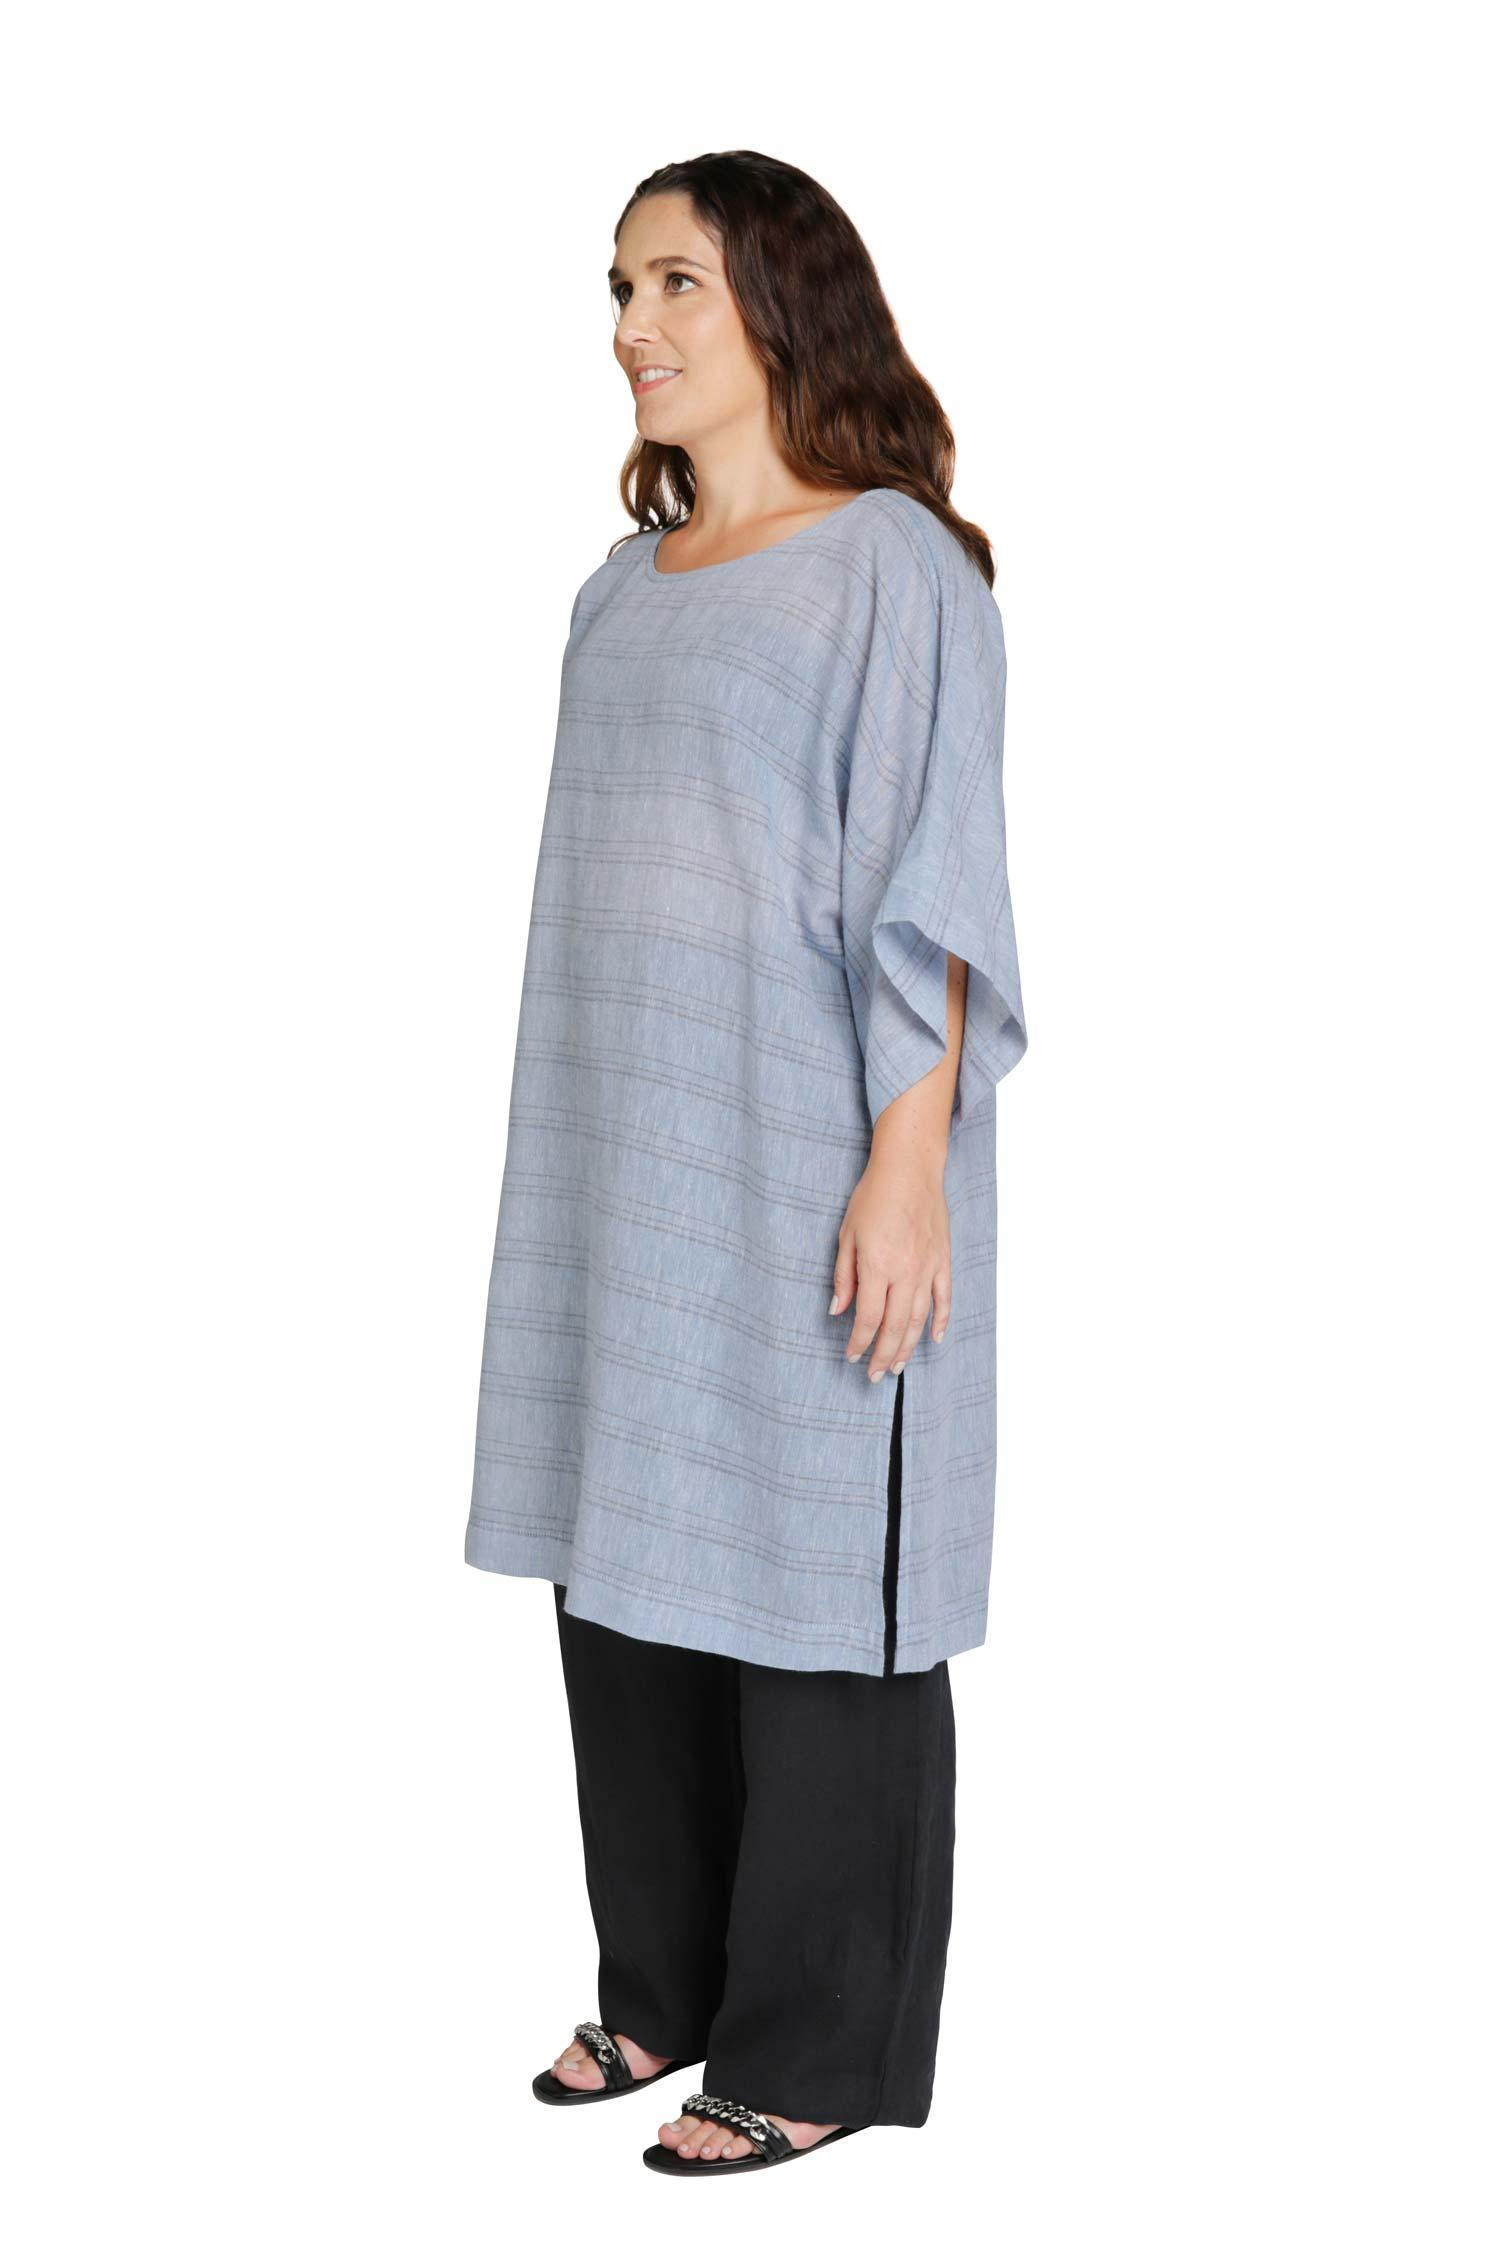 Blue tunic with horizontal stripes